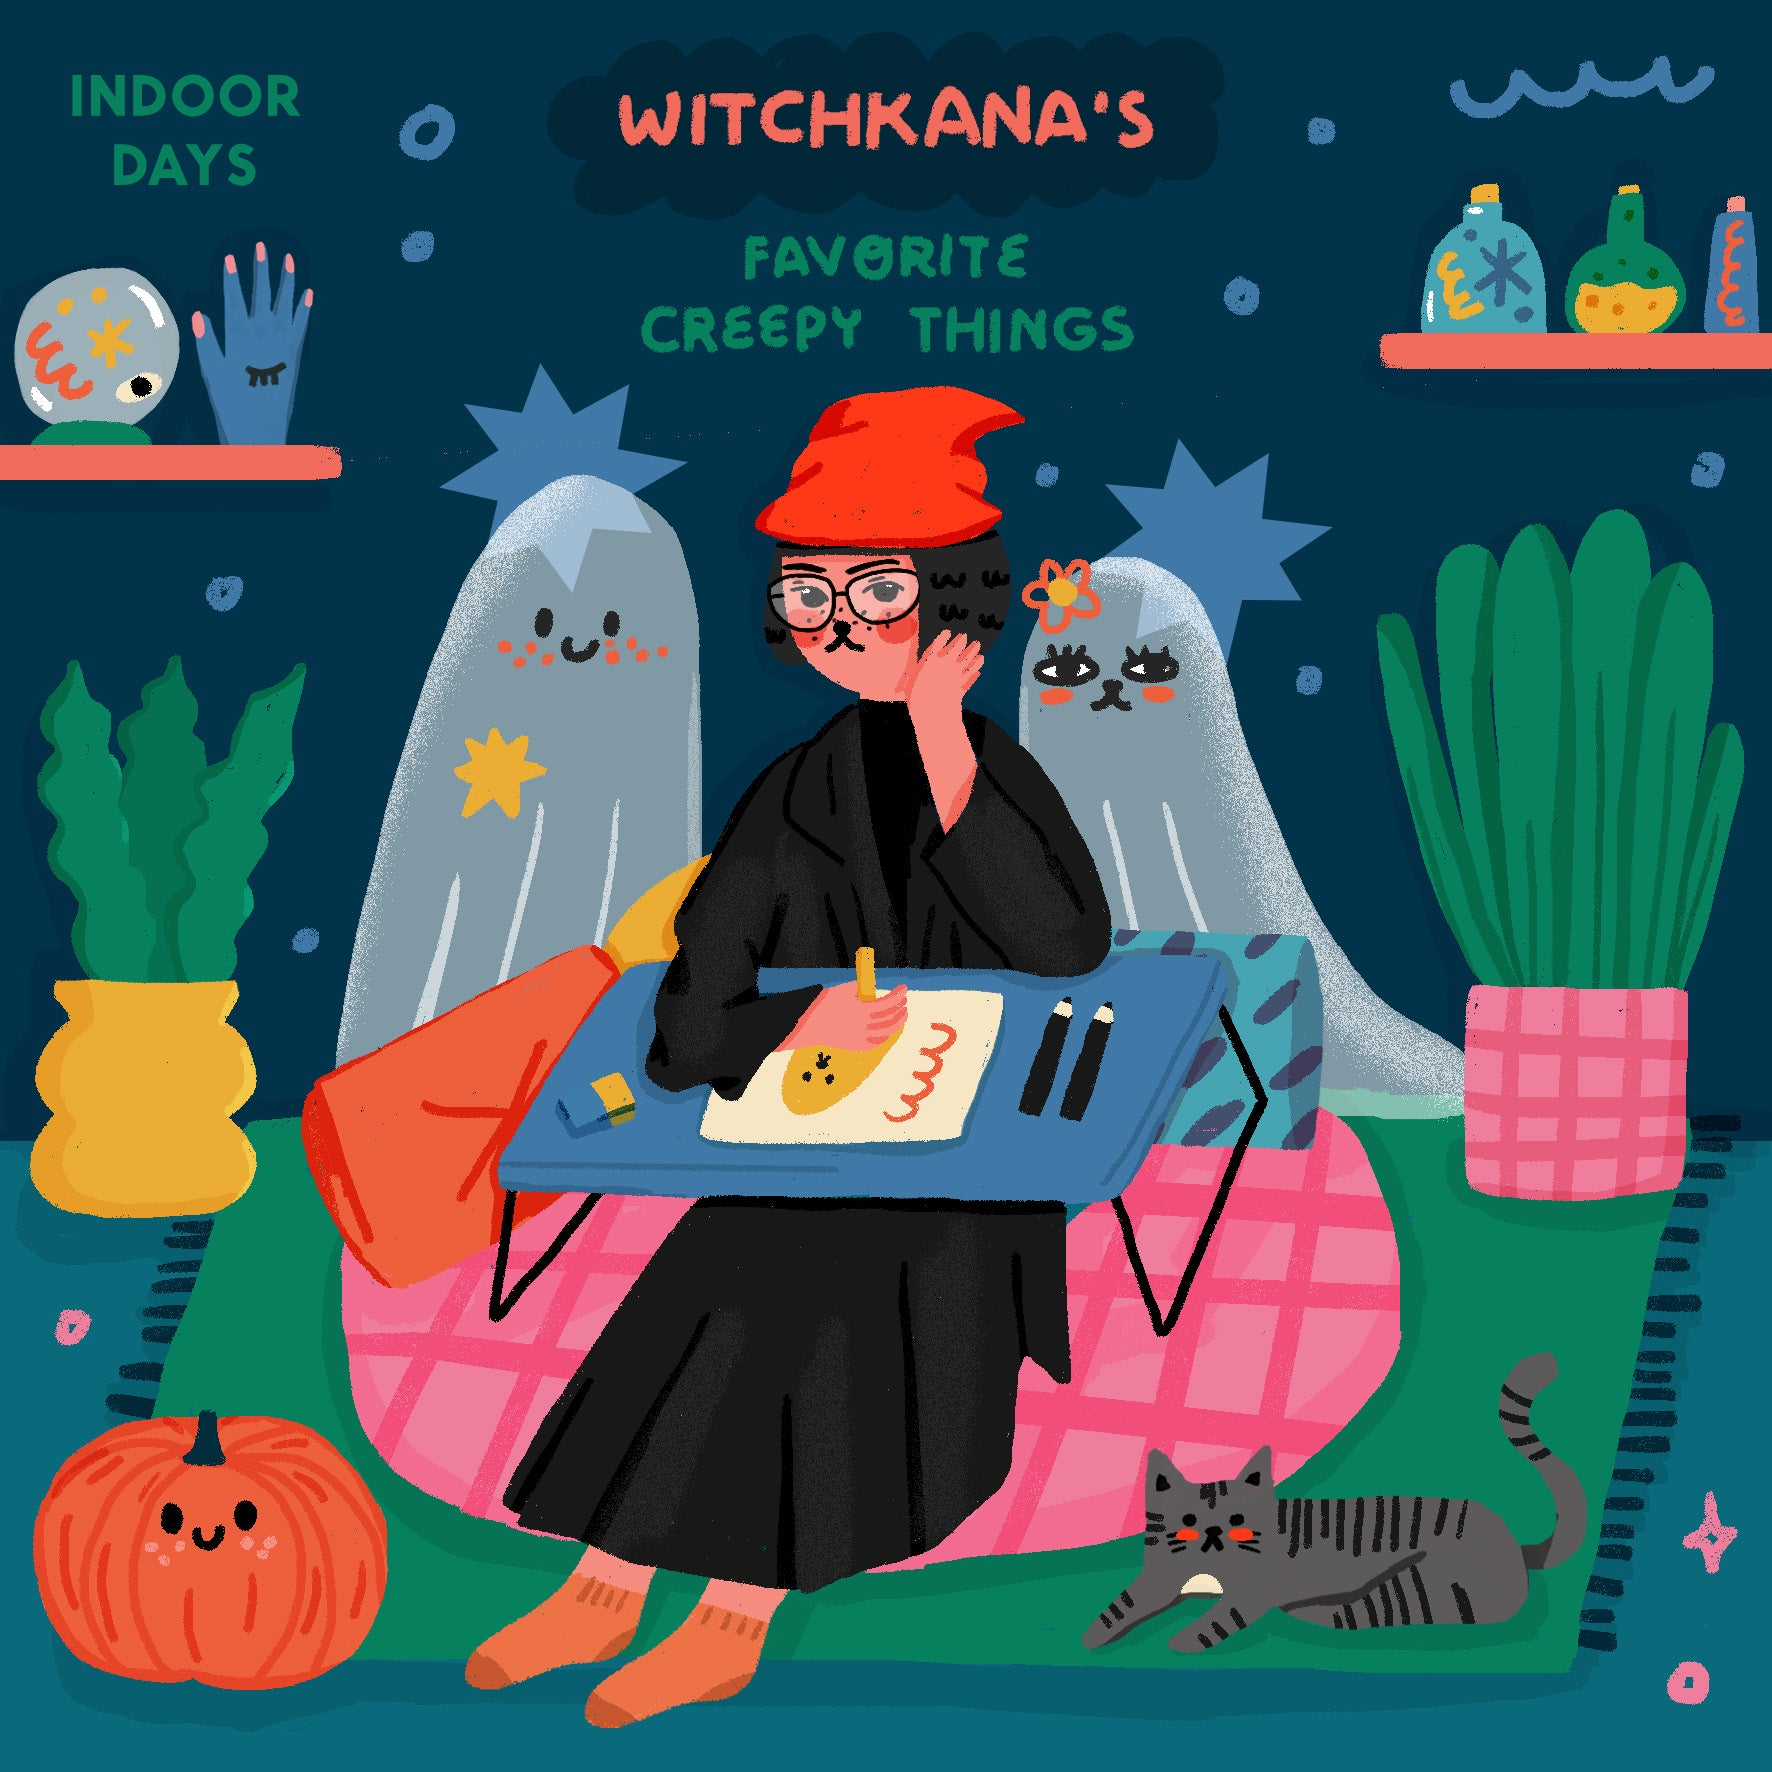 Indoor Days: Witchkana's Favorite Creepy Things!